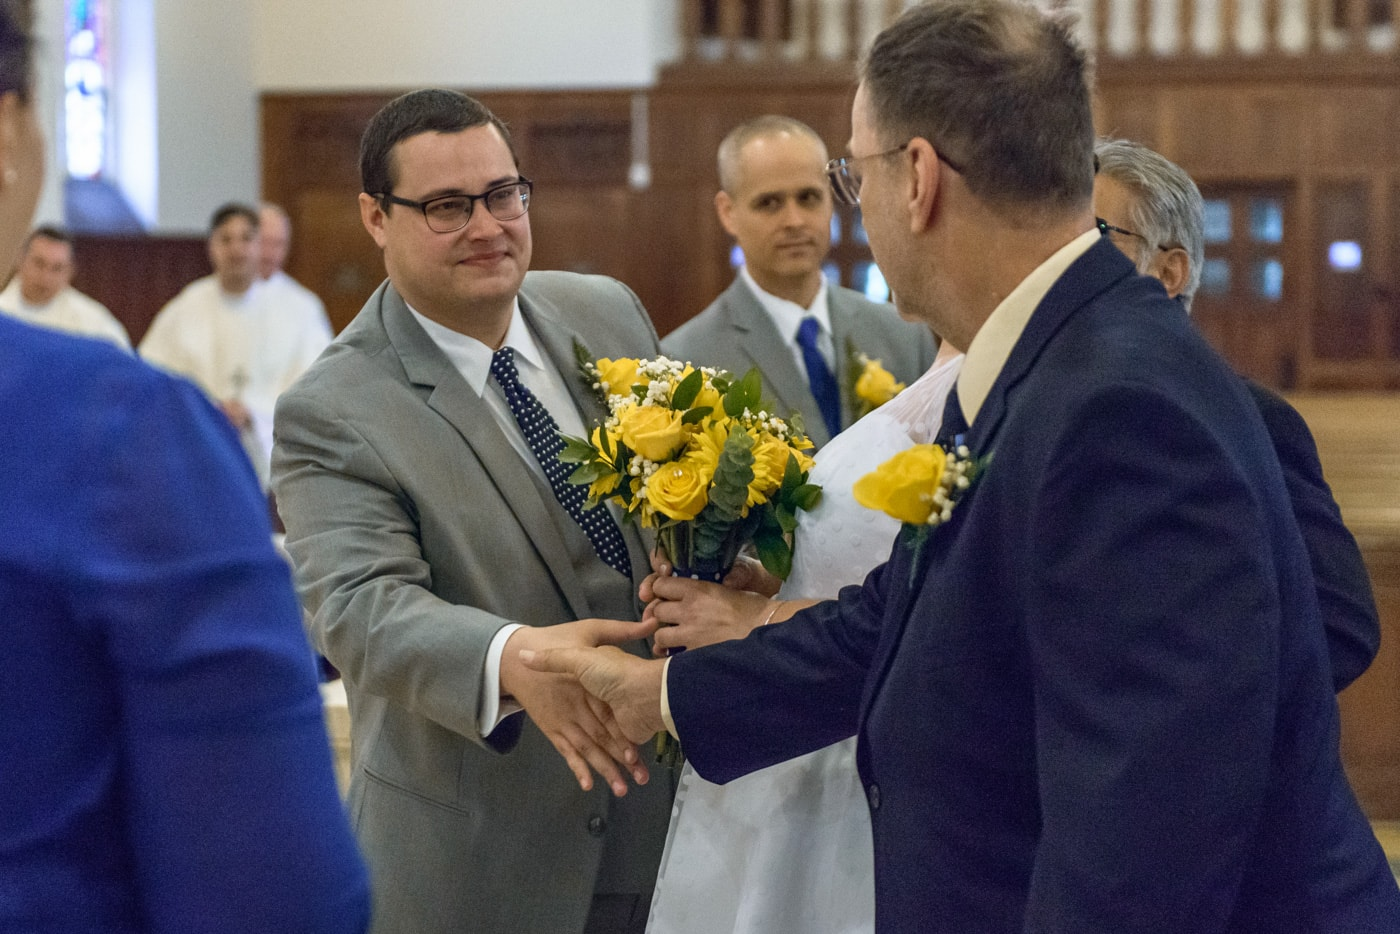 The groom shakes hands with the bride's father during wedding ceremony at St James Catholic Church in Falls Church, Virginia